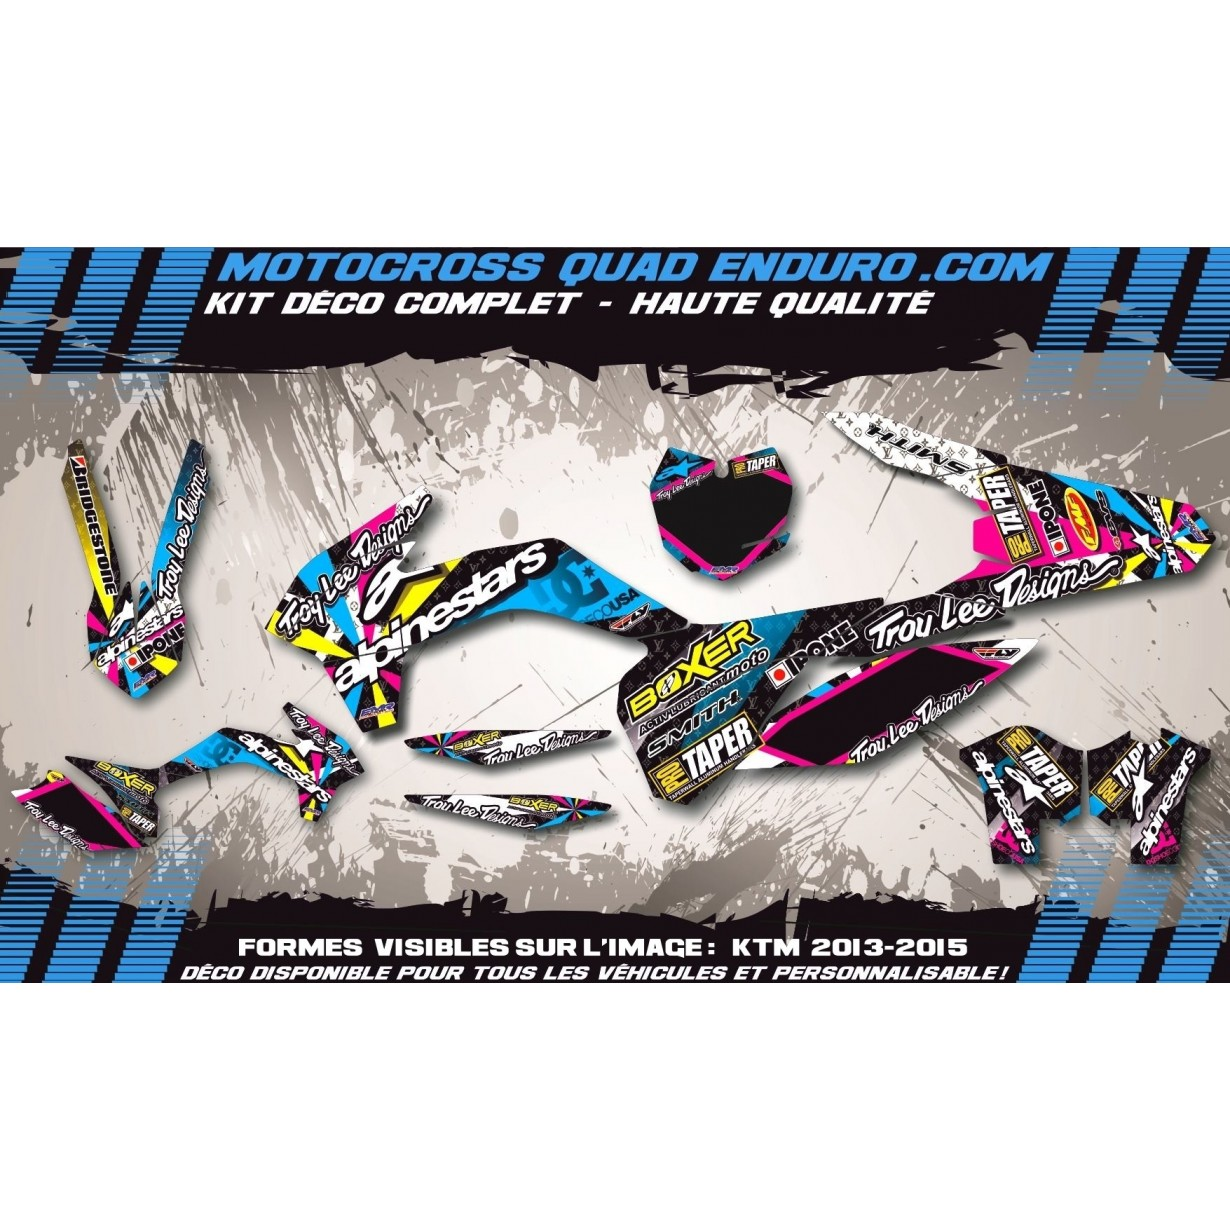 KIT DÉCO Perso WR 250 / 300 07-13 ALPINESTAR MA4A